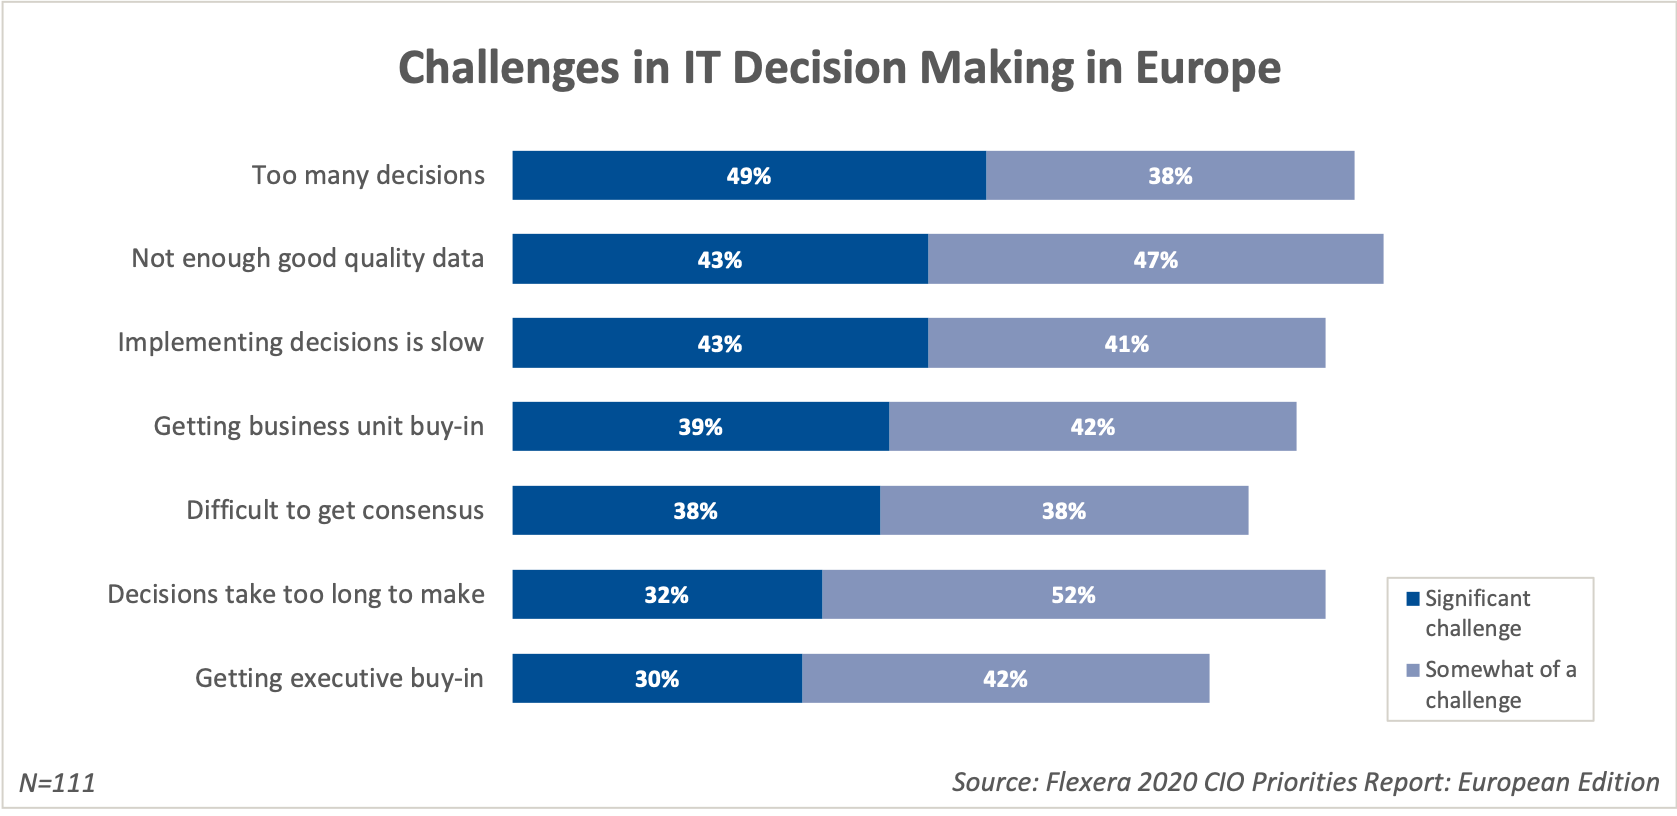 Challenges in IT Decision Making in Europe